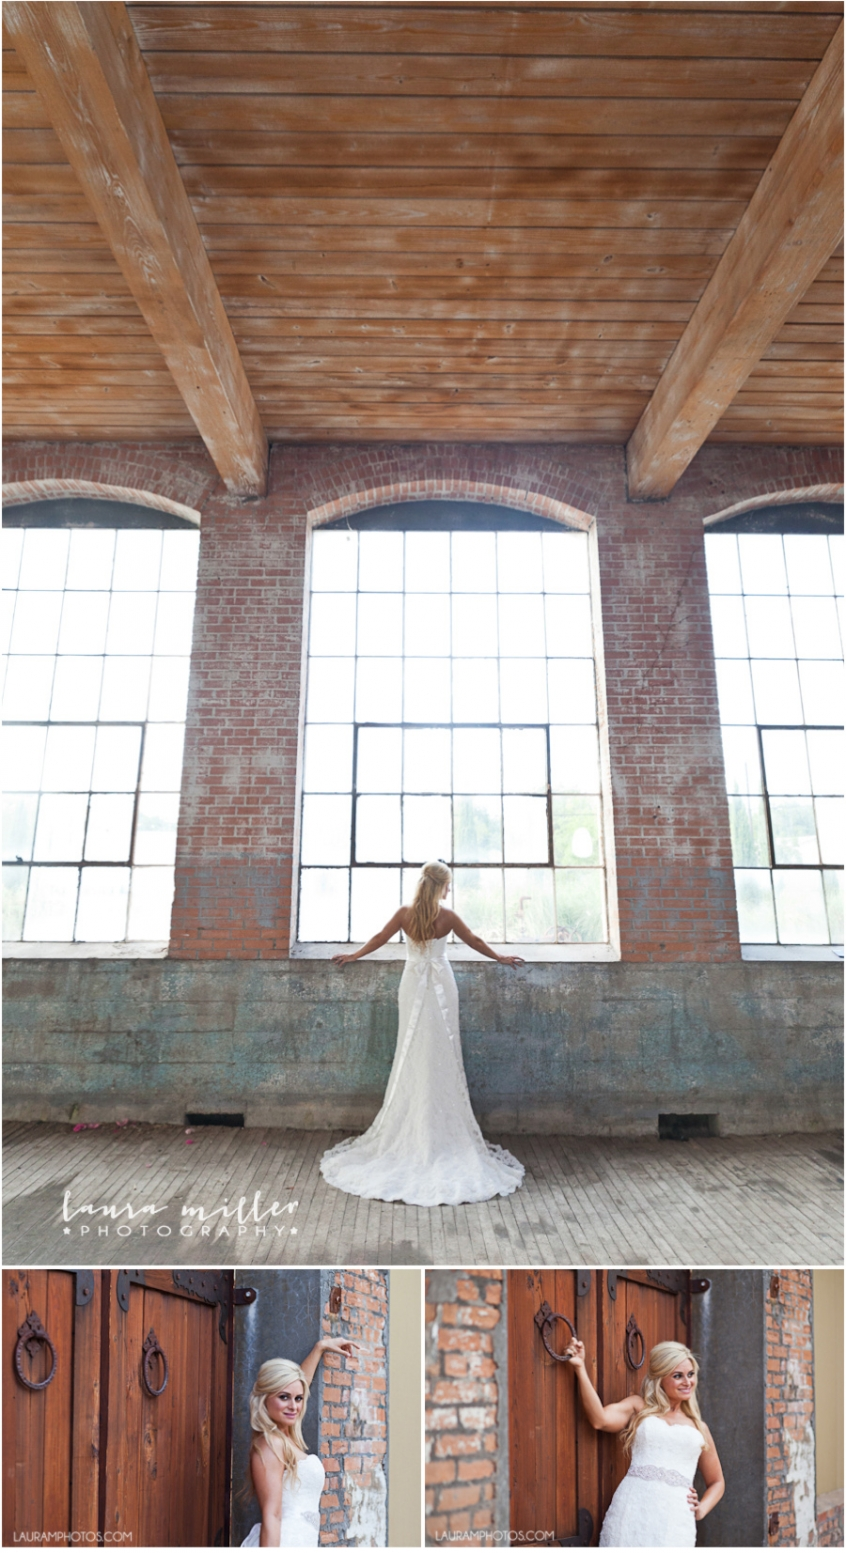 Dallas Bridal Photos